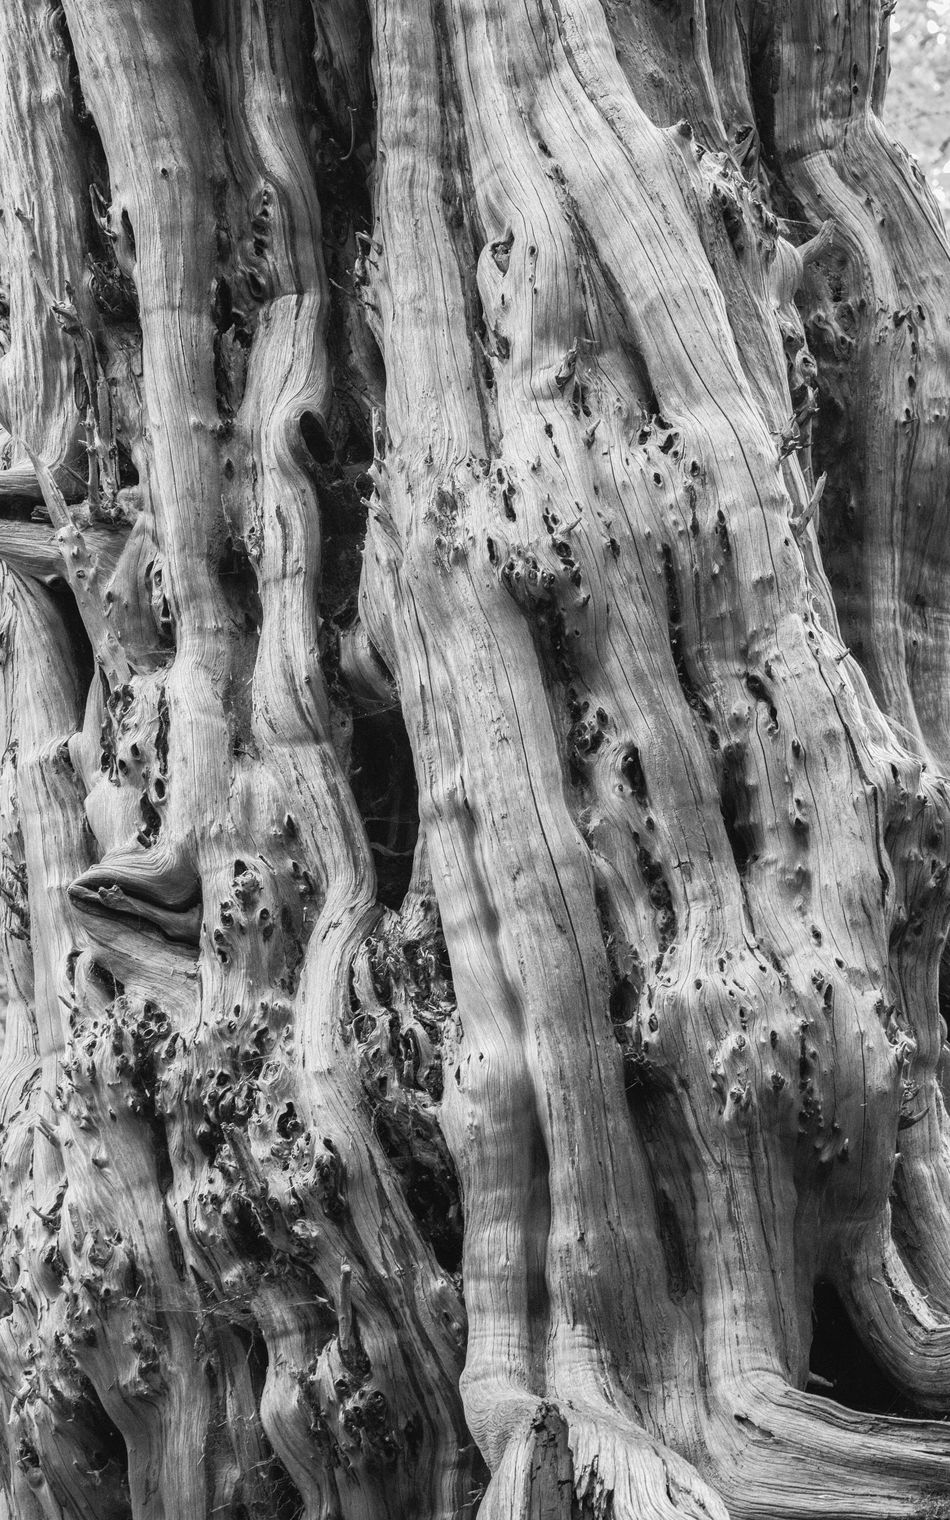 Tree branches at Studley Royal, Yorkshire Bark Bark Blackandwhite Branches Close-up Day England Growth Knobbly Knotted Wood Monochrome Nature No People Physical Geography Rough Studley Royal Texture Textured  Tree Tree Tree Trunk Trunk Uk Wood Yorkshire